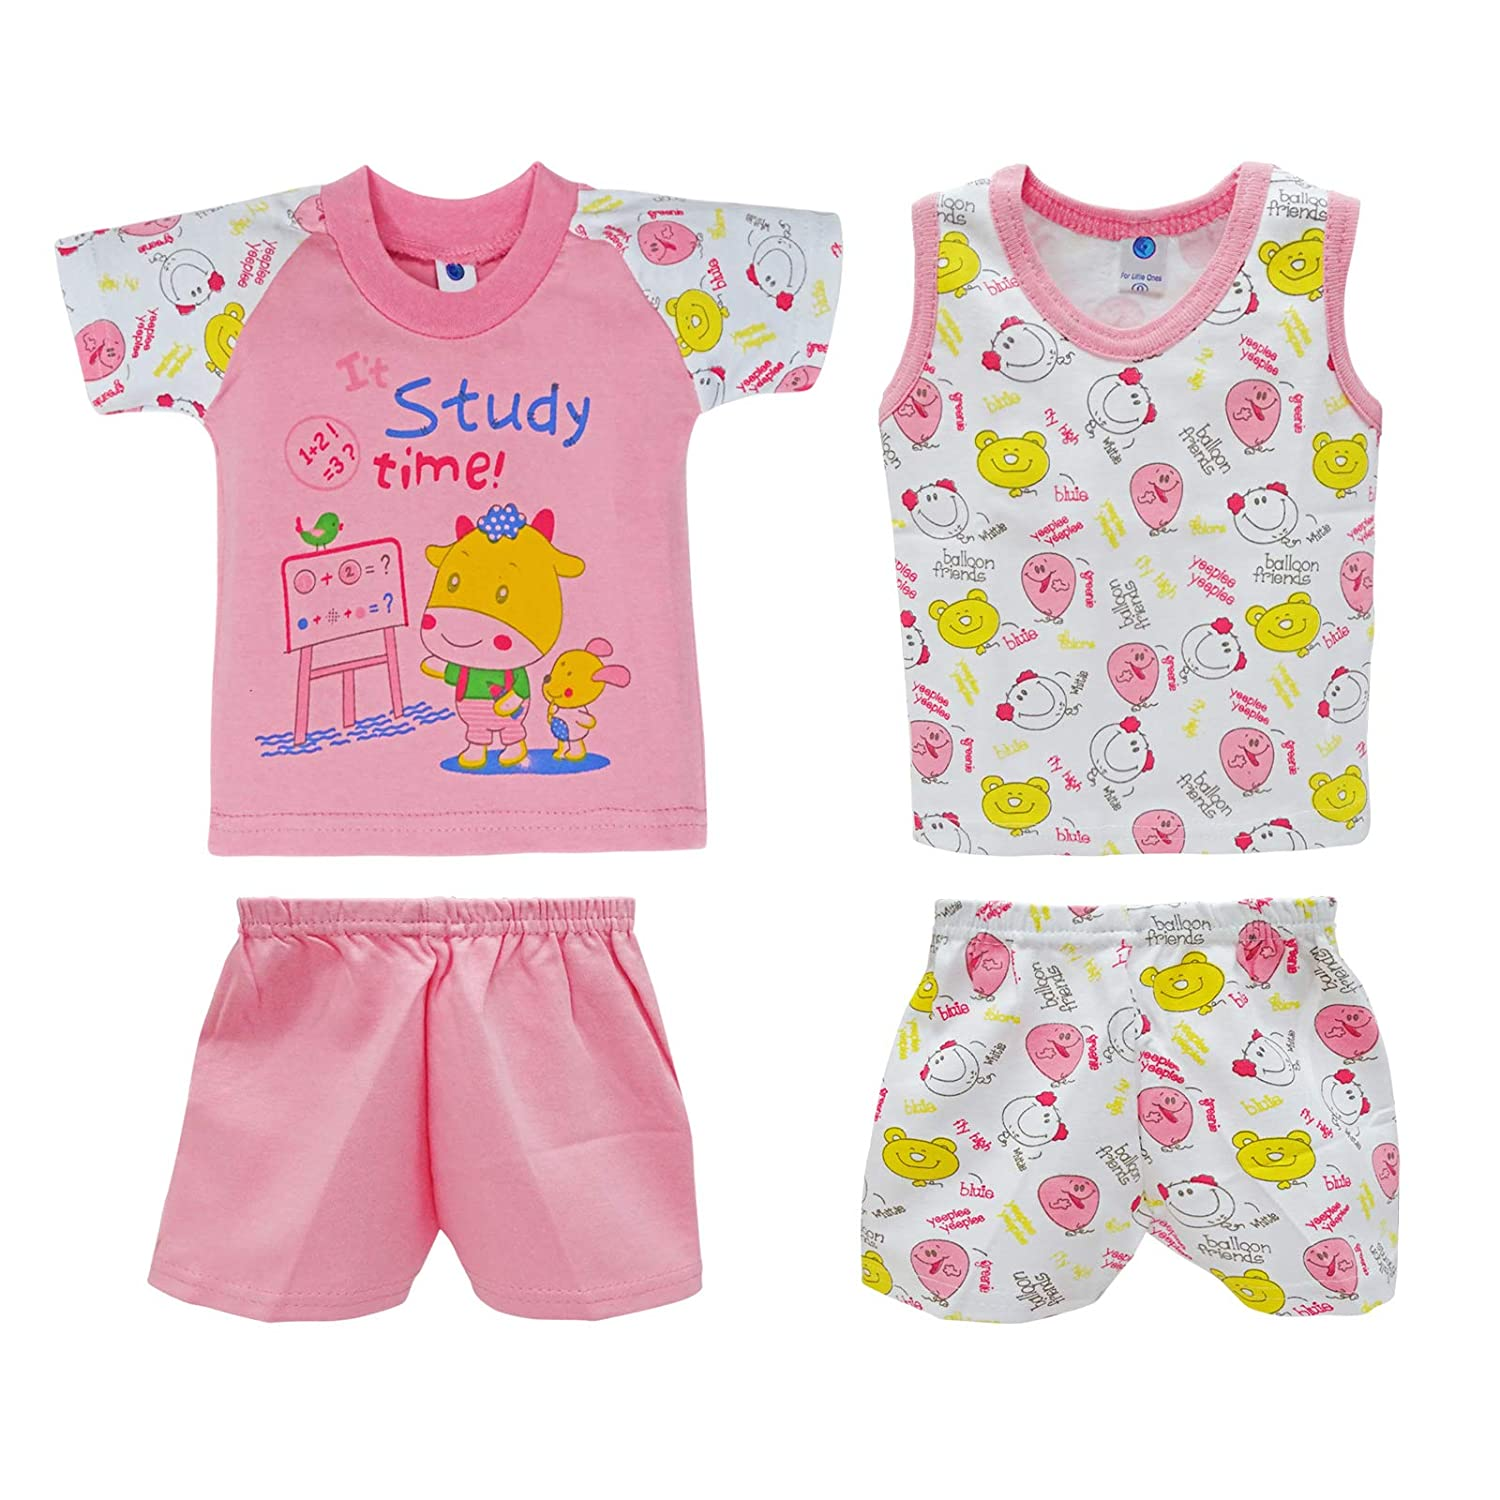 Peegli Baby Boy Girl Outfits Pink Summer T-Shirt Vest Tops + Shorts Pants Baby Toddler Clothes 4 Pcs 0-3 Months